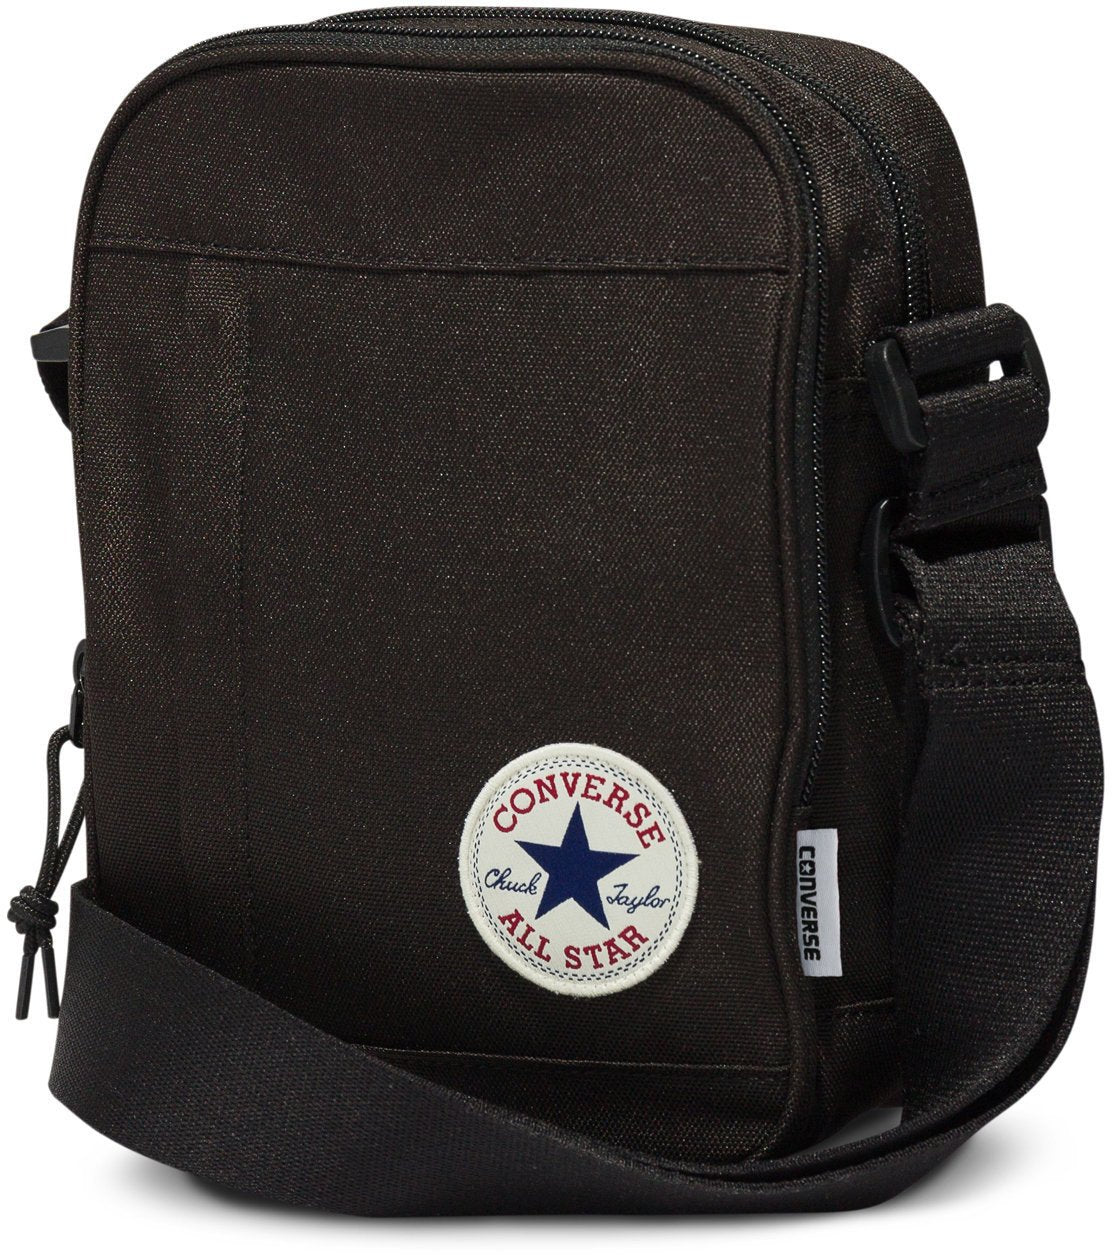 Converse All Star Cross Body Messenger Bag